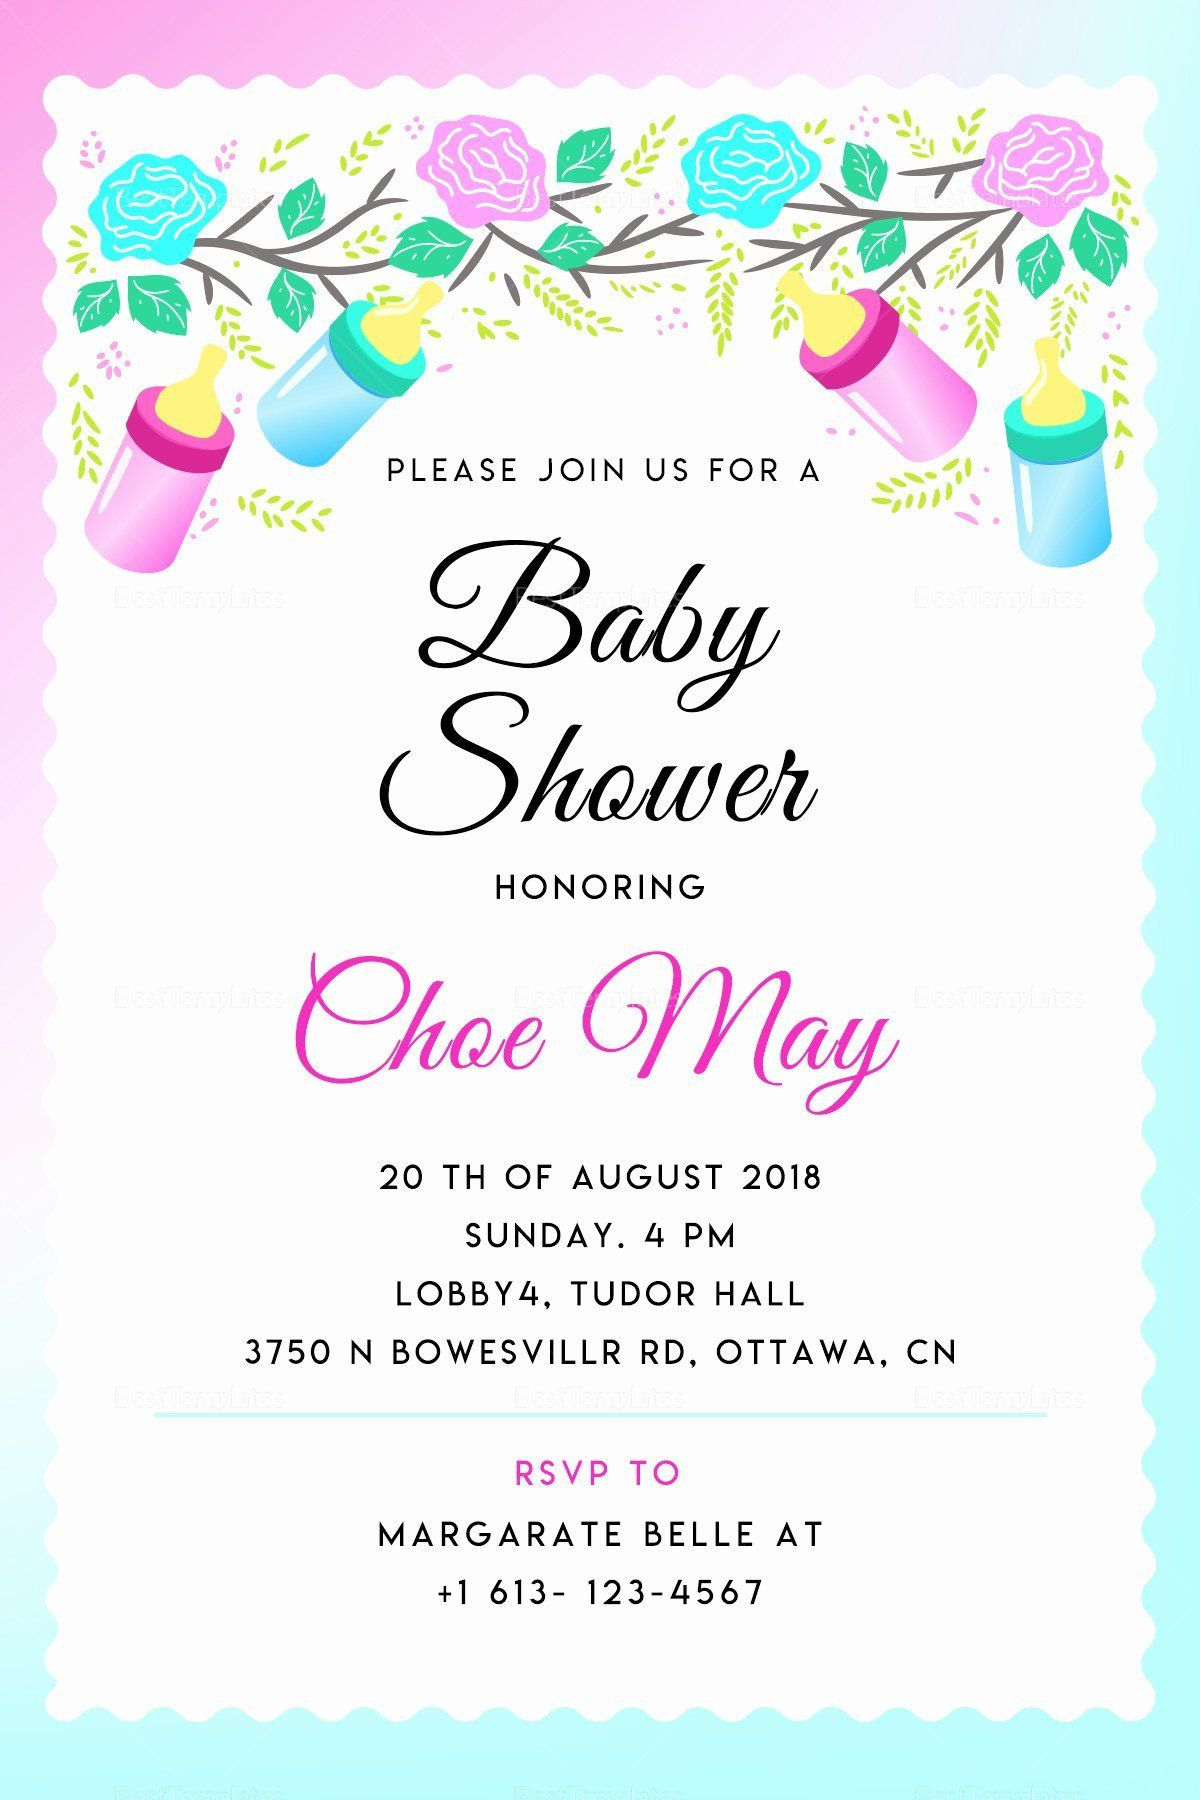 002 Frightening Baby Shower Invite Template Word Picture  Invitation Wording Sample Free ExampleFull